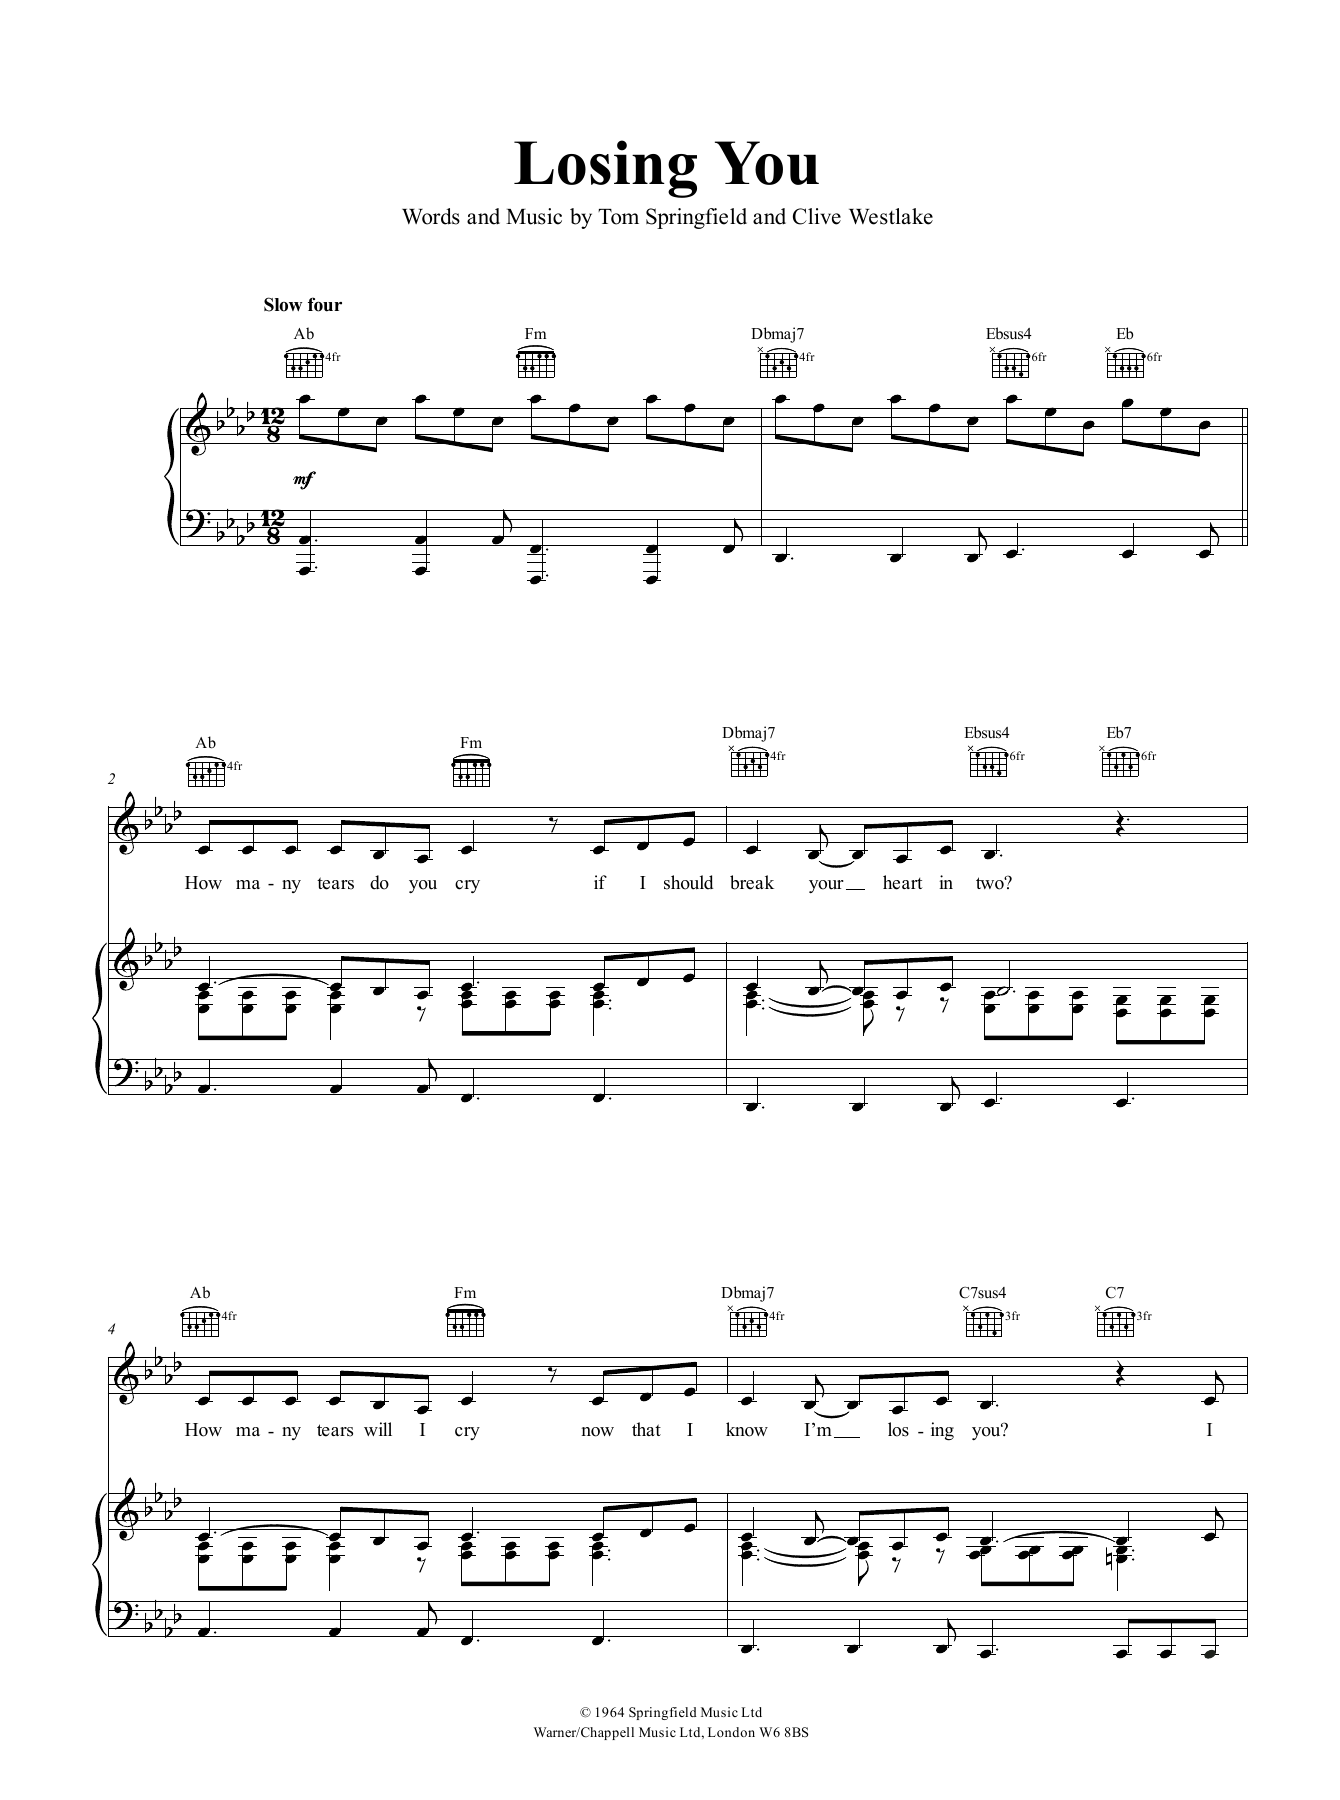 Dusty Springfield Losing You sheet music notes and chords. Download Printable PDF.